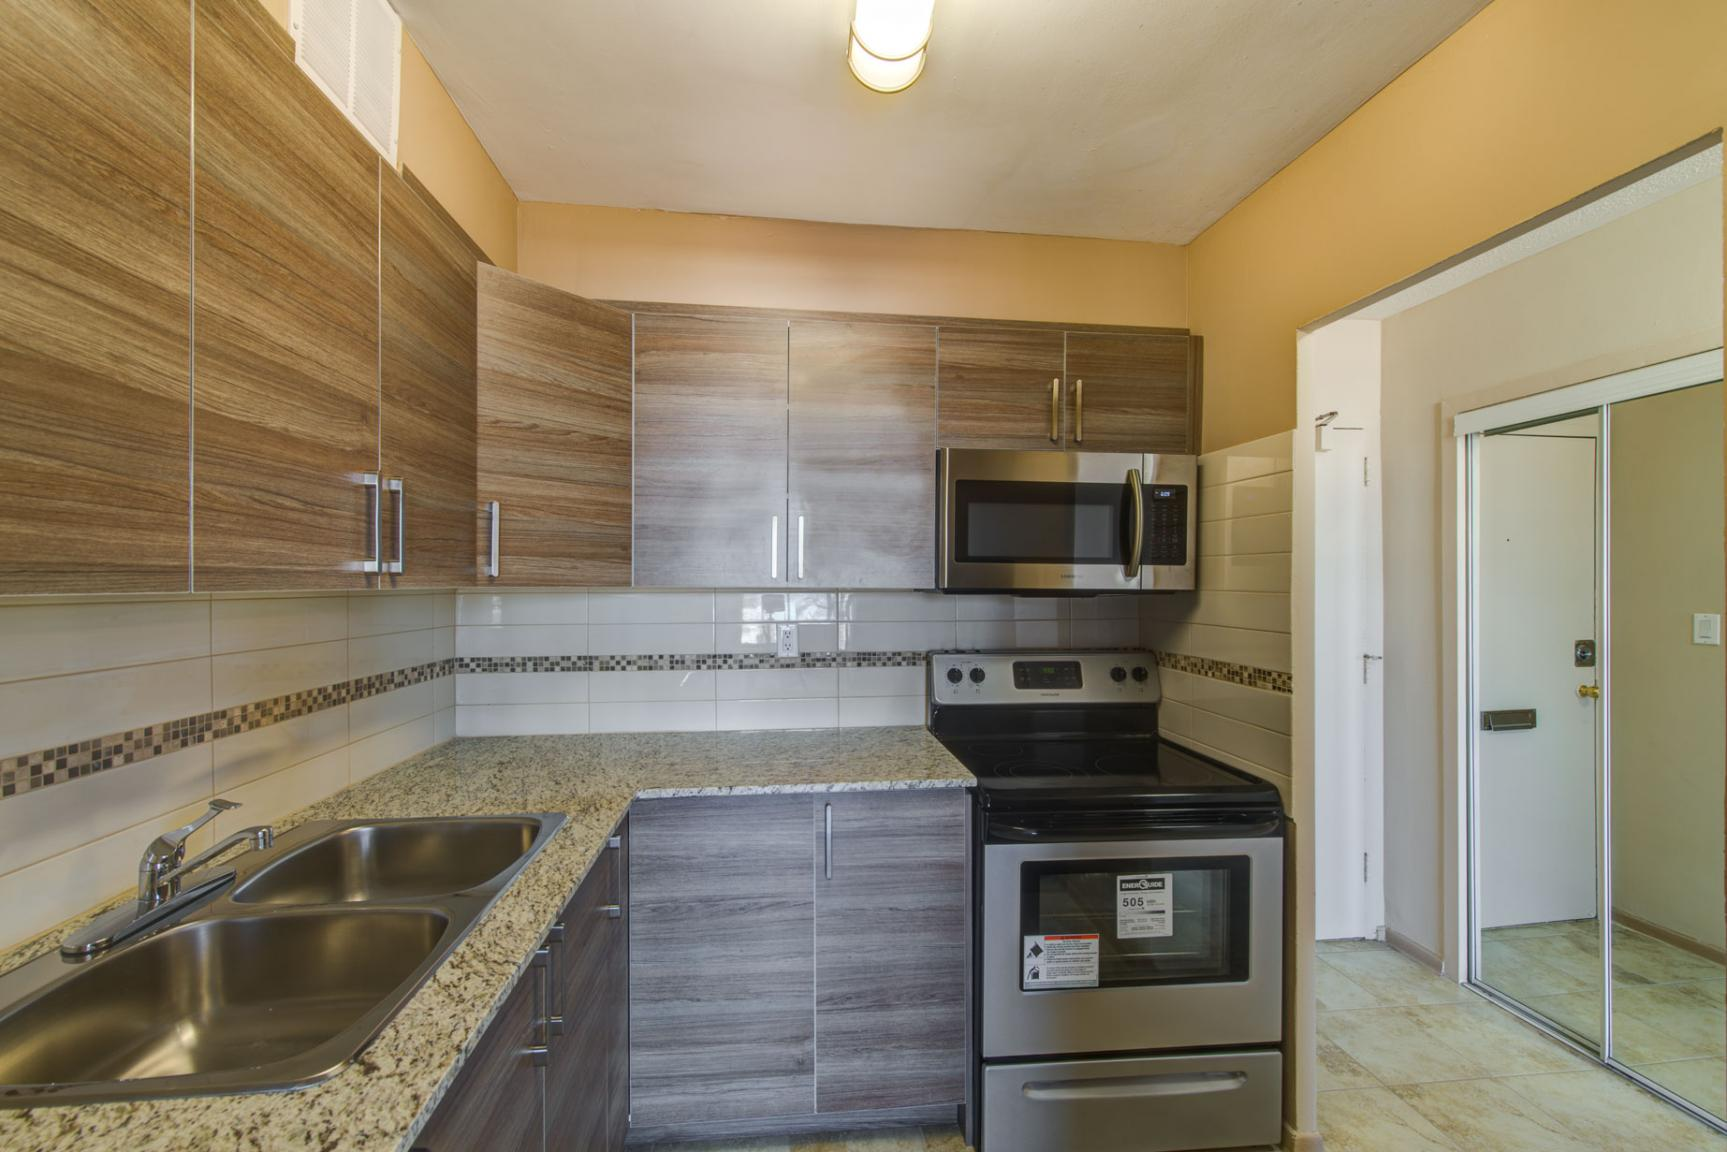 1 bedroom Apartments for rent in North-York at Hunters Lodge - Photo 38 - RentersPages – L400651